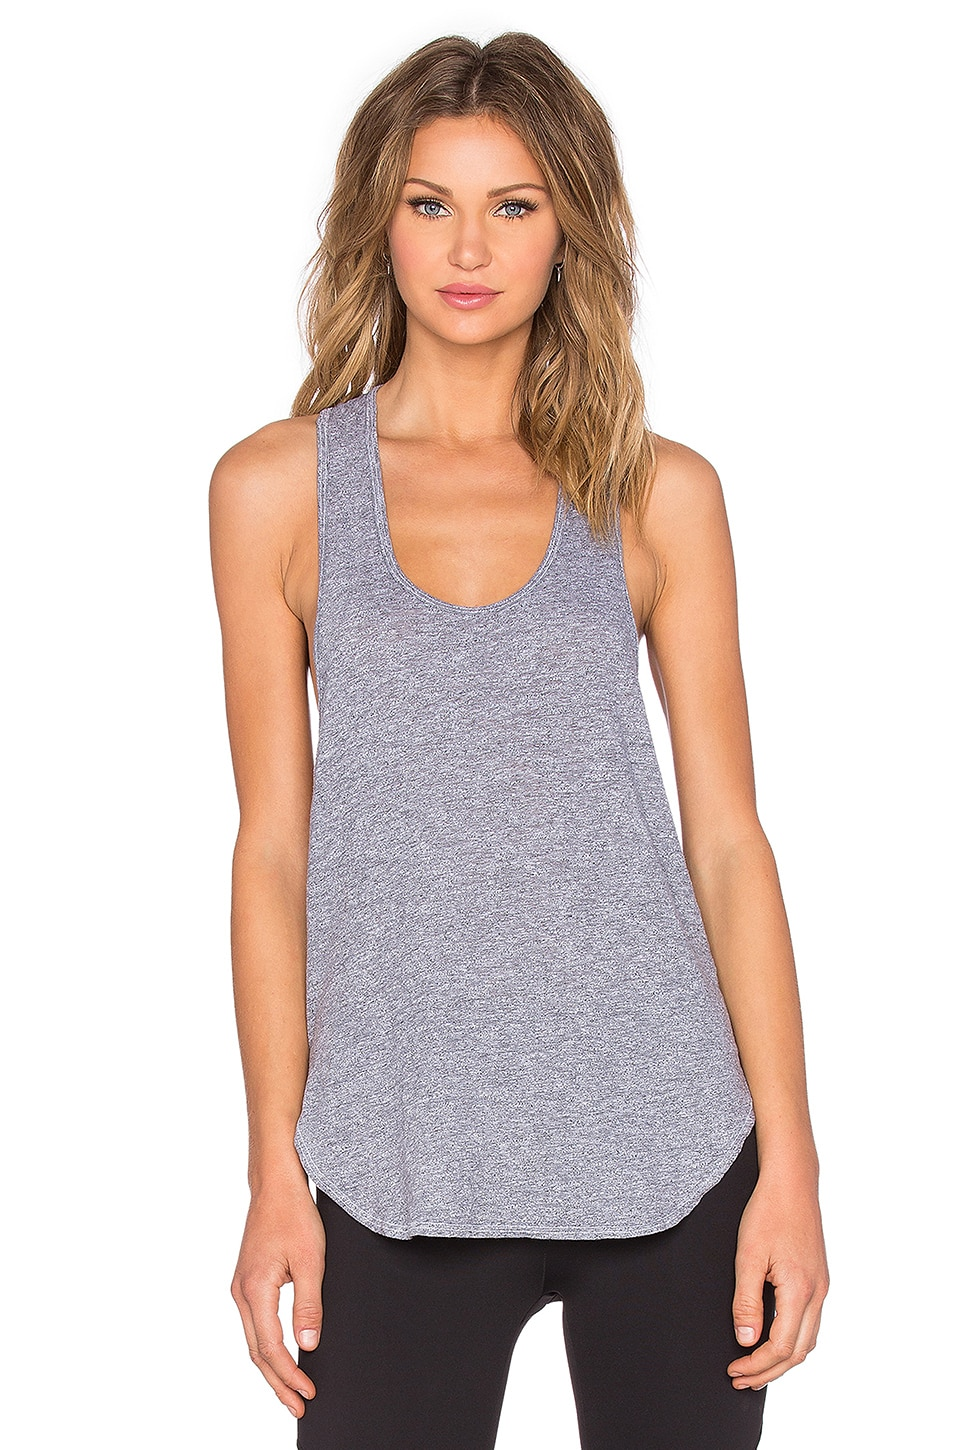 Lanston  Racerback Tank in Heather